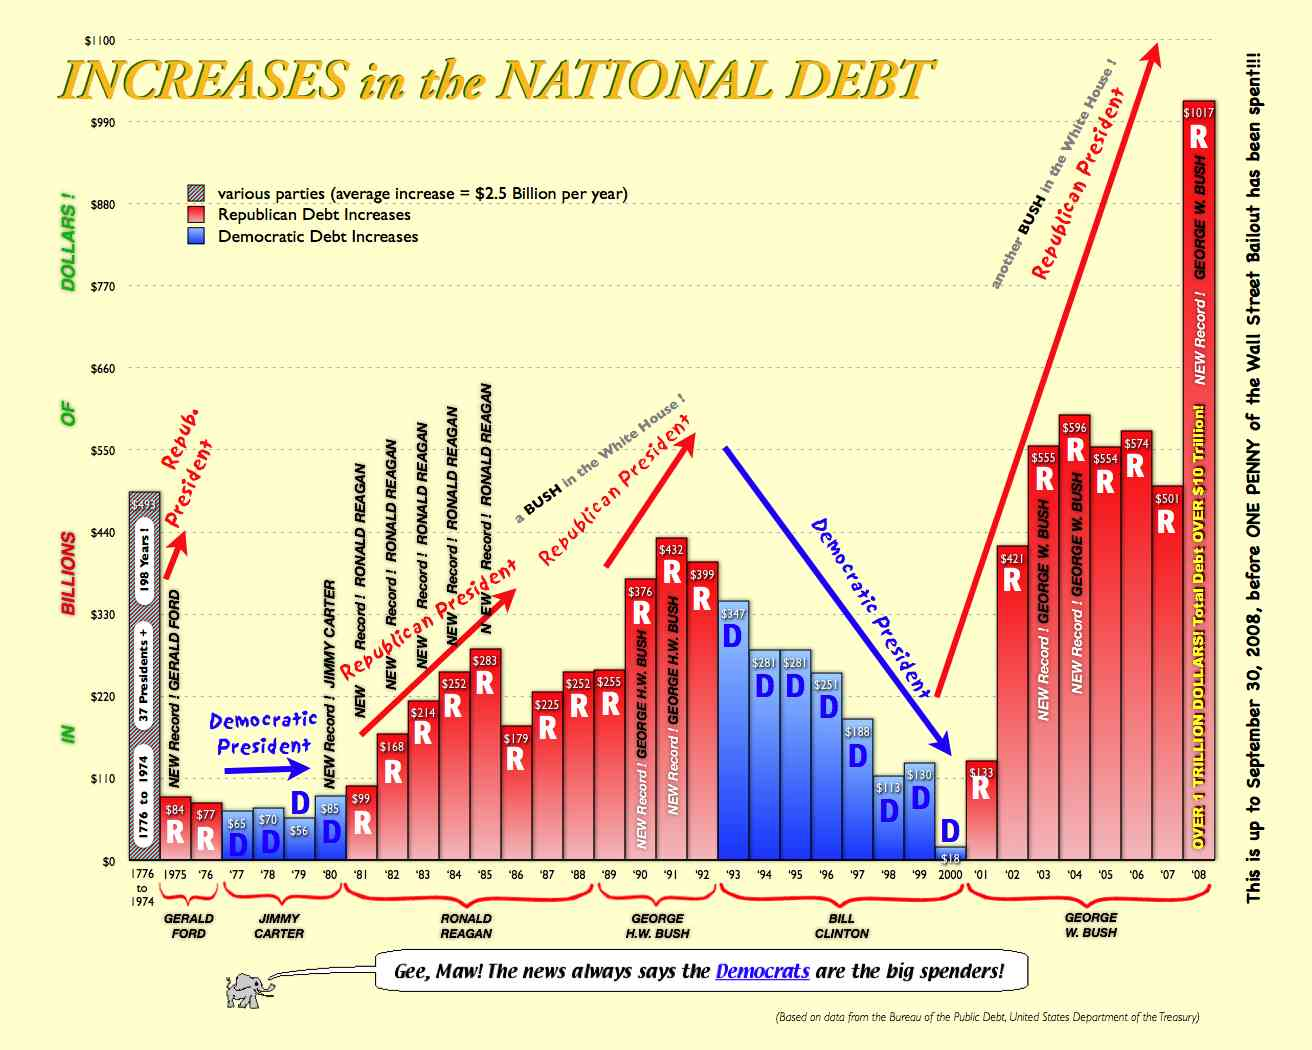 an analysis of the us national debt By this measure, the us has the 2nd highest national debt usa is #7 in debt to gdp, but #2 in debt to revenue in absolute terms, the united states is the most indebted country in the world, accounting for 29% of the world's $60 trillion of sovereign debt .